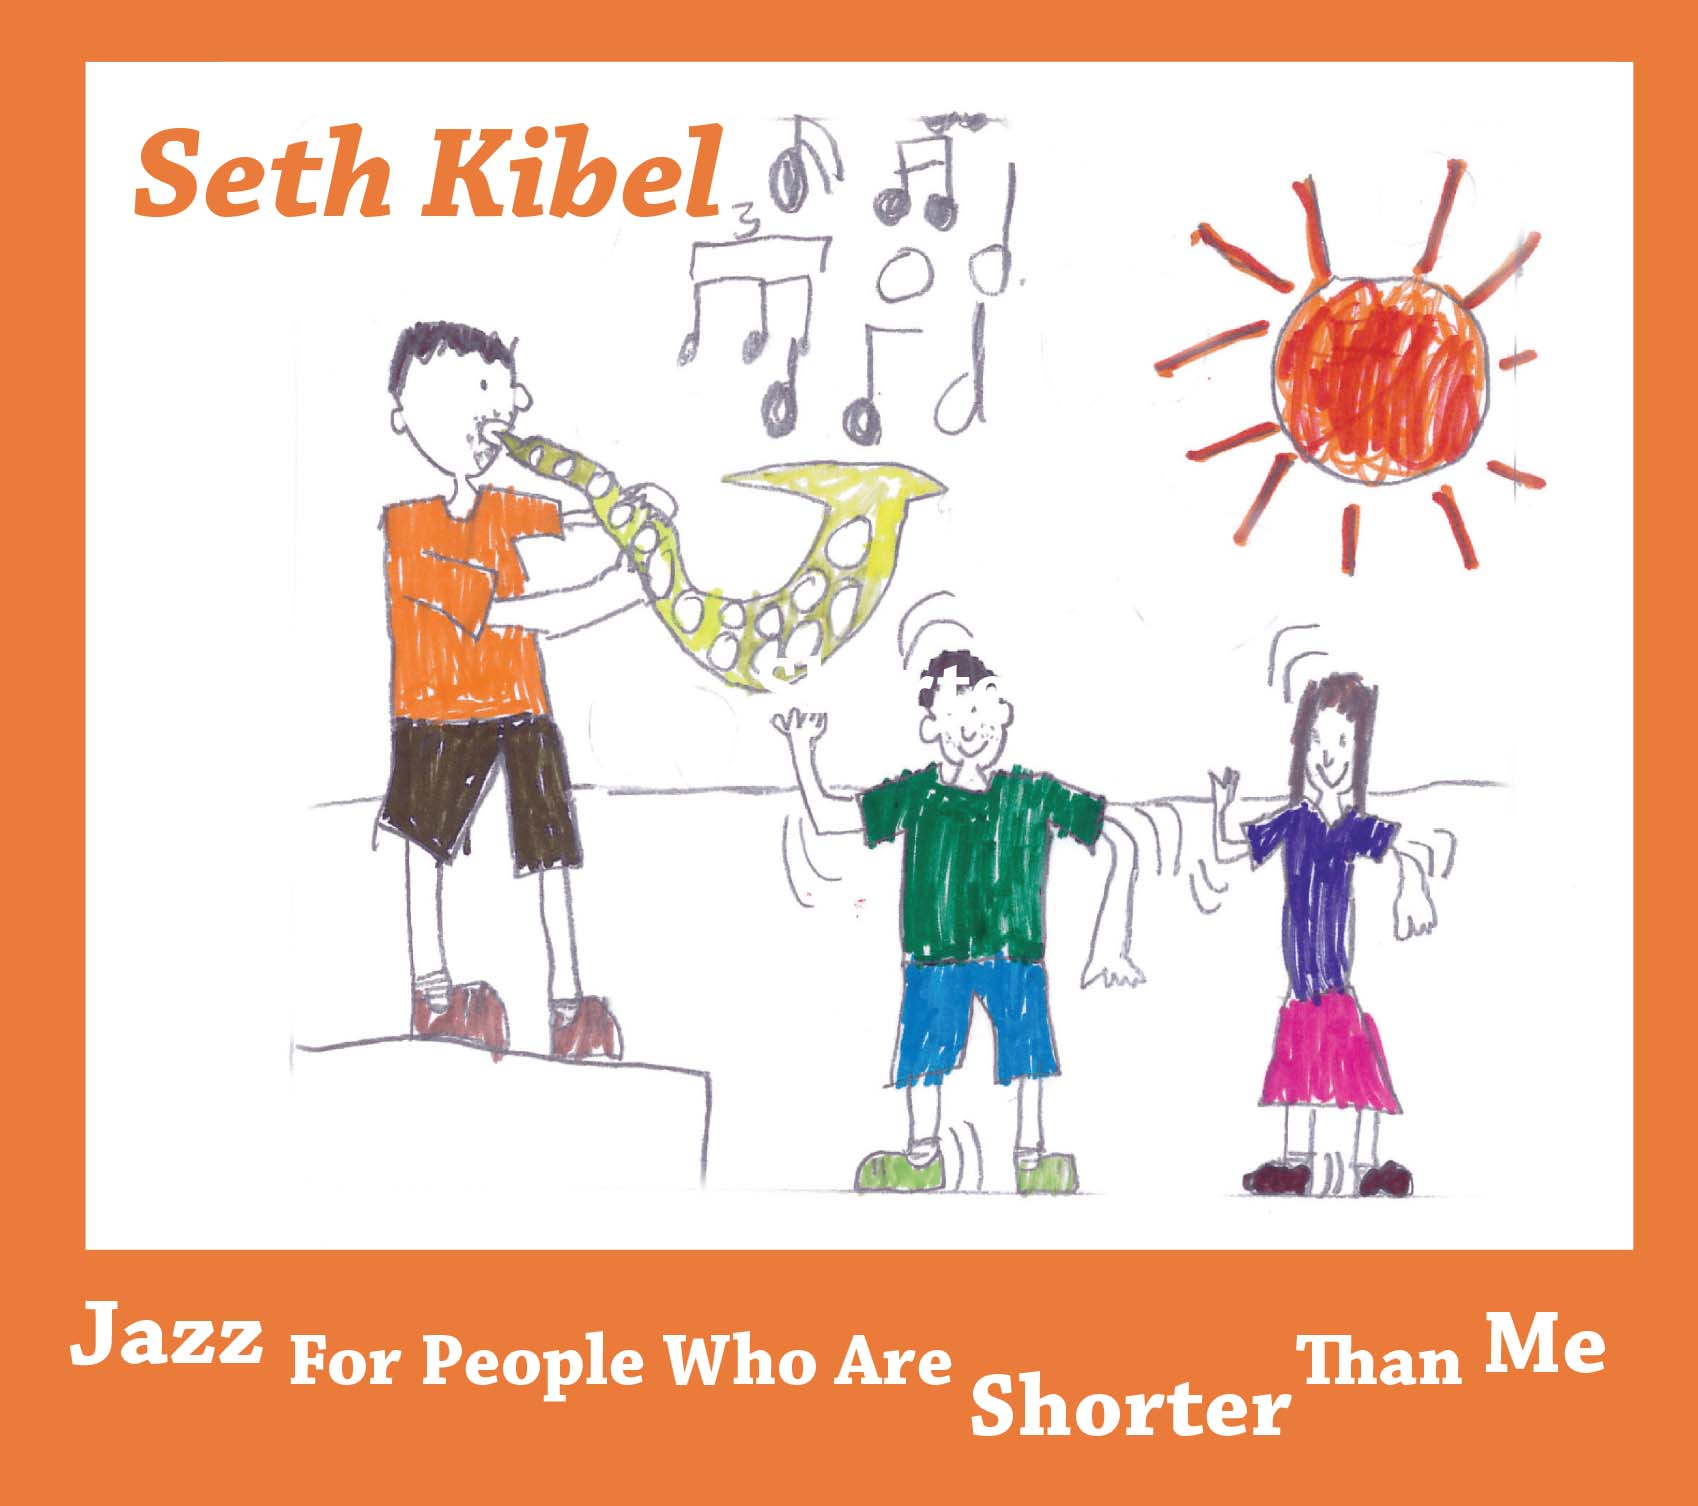 Jazz for People Who Are Shorter Than Me - (cool) progeny